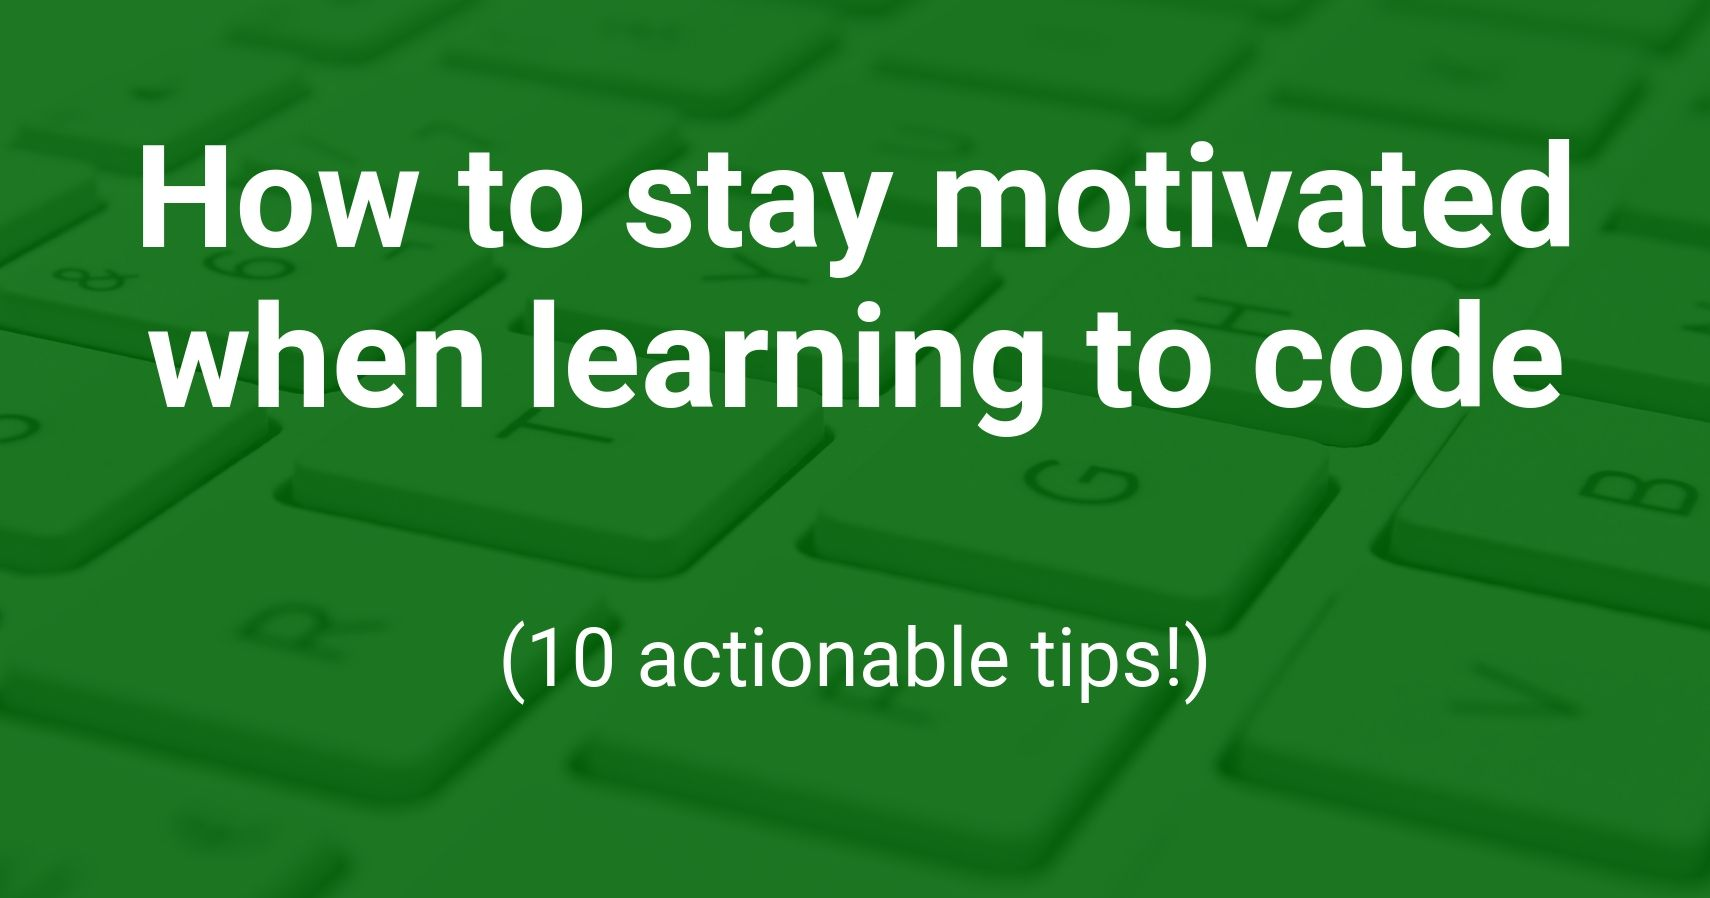 Staying motivated while learning to code